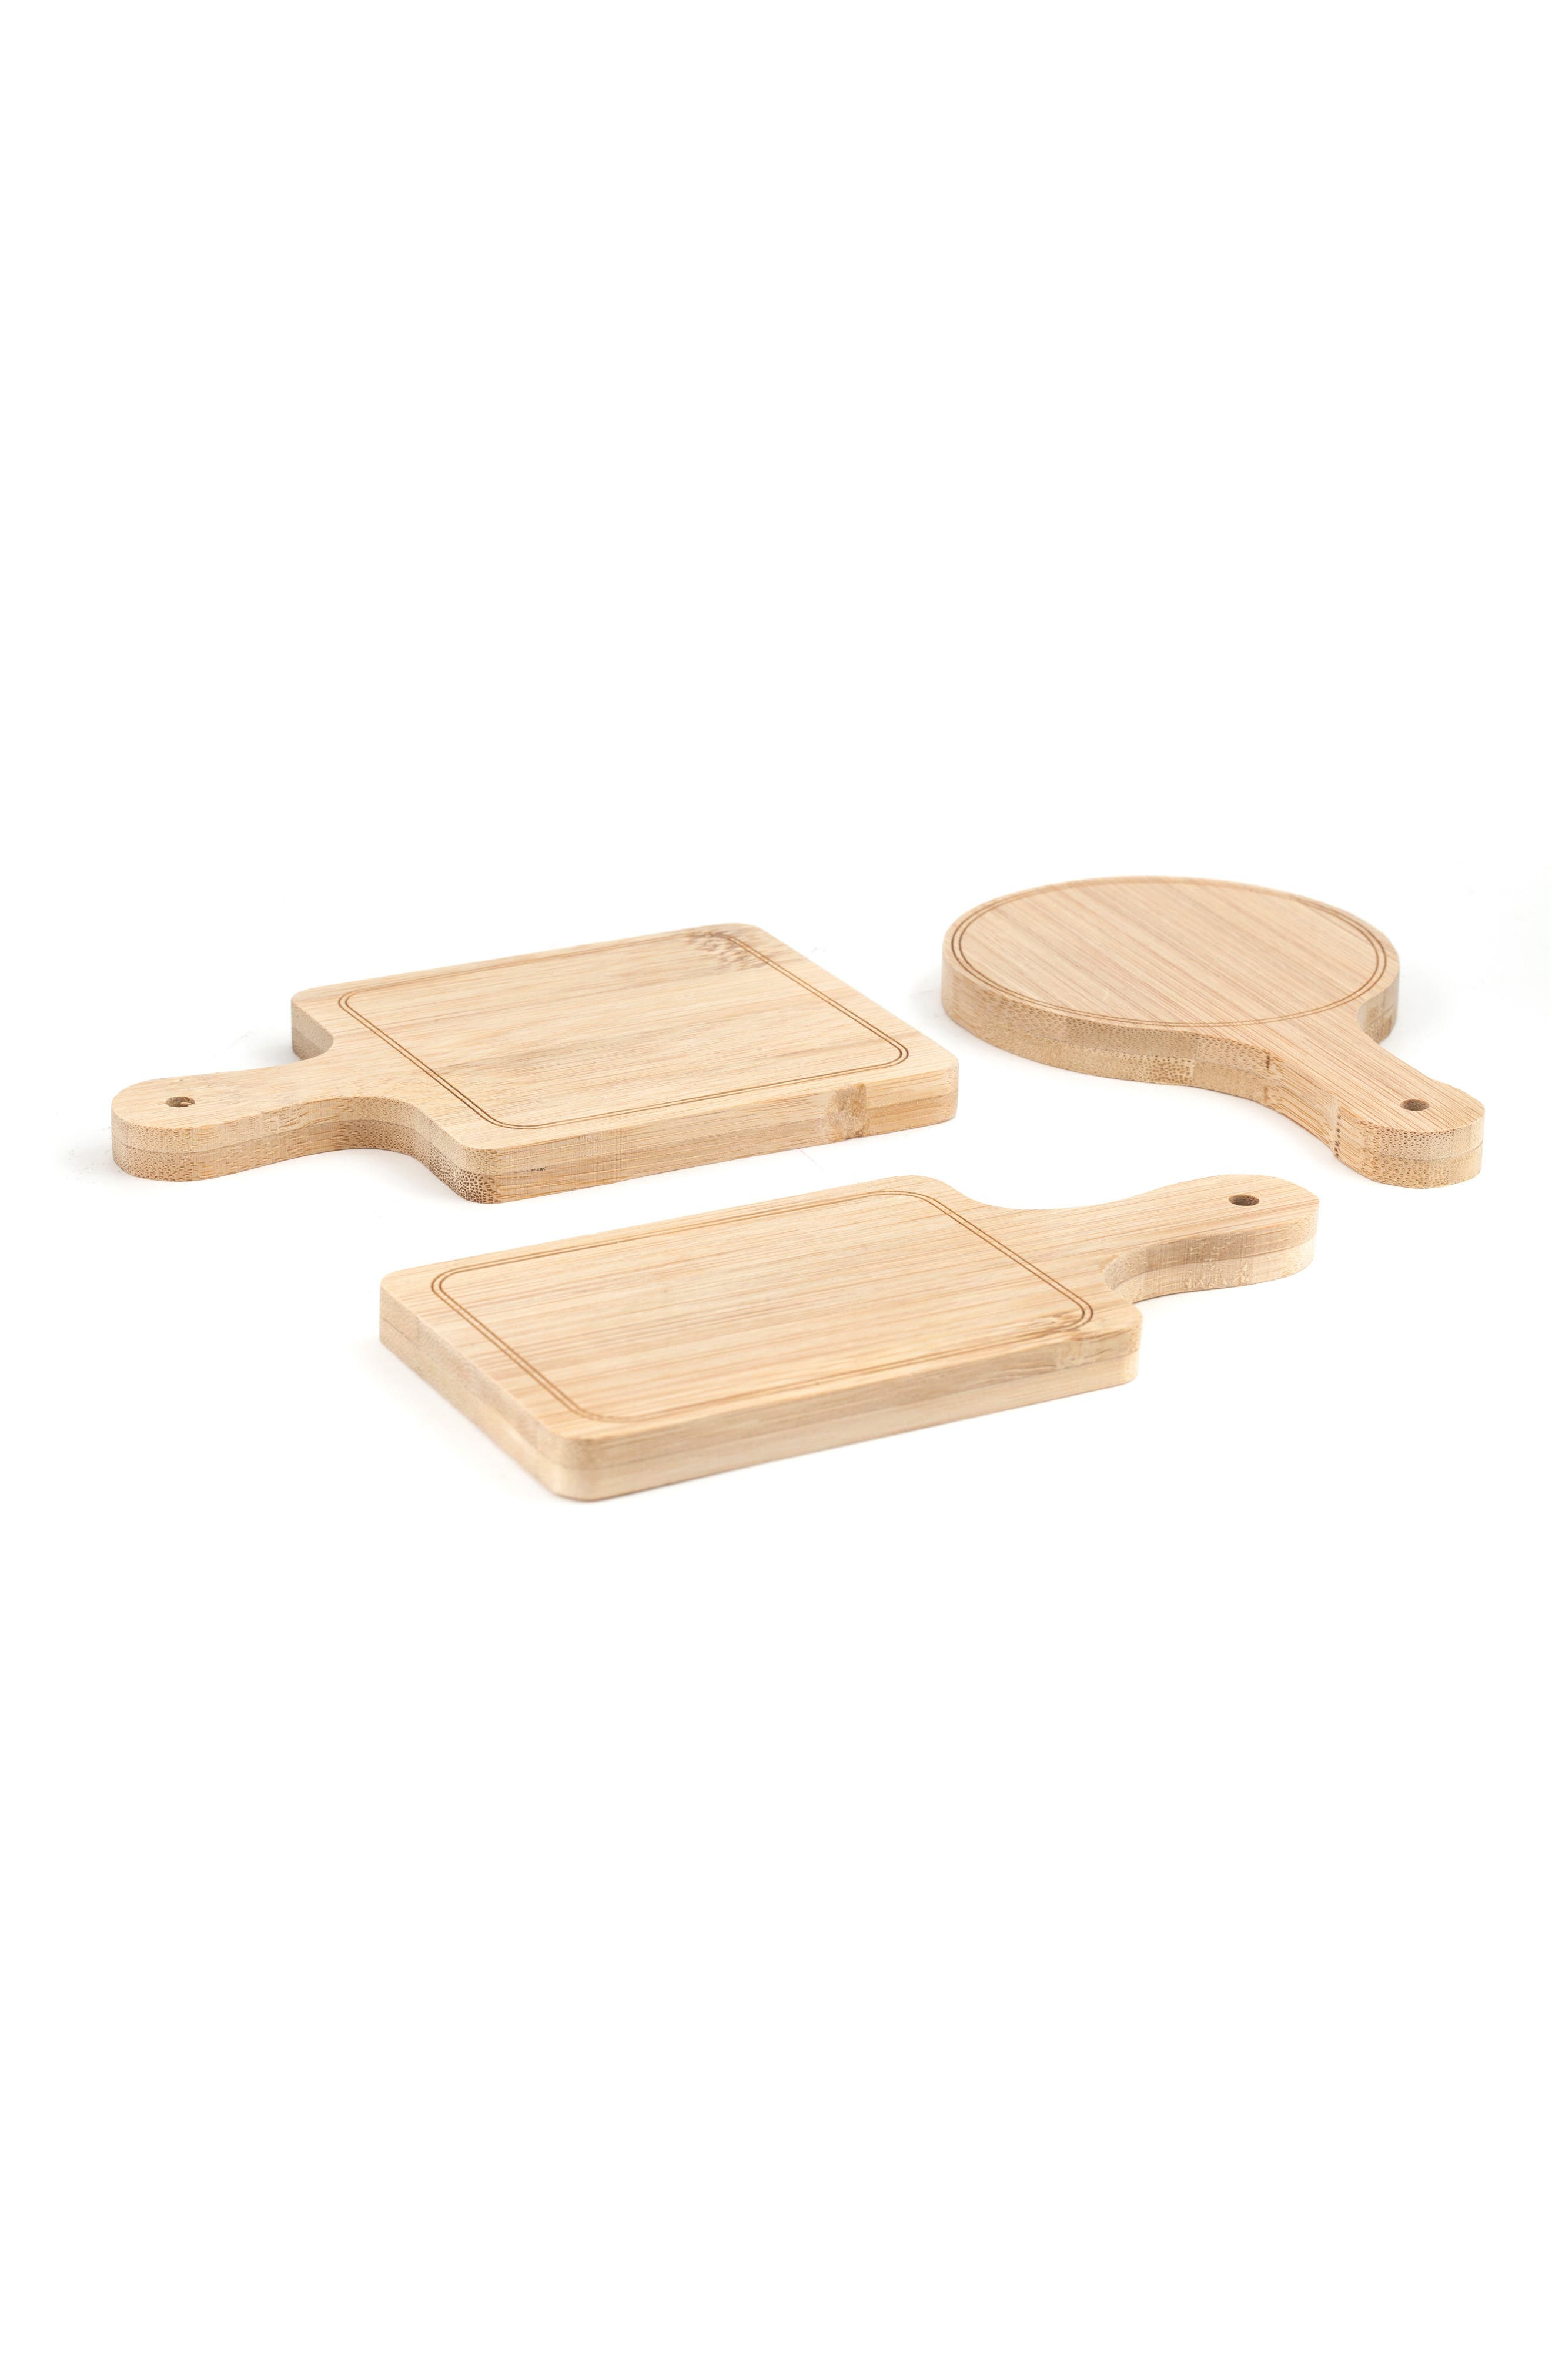 Set of 6 Mini Serving Trays,                         Main,                         color, Wood